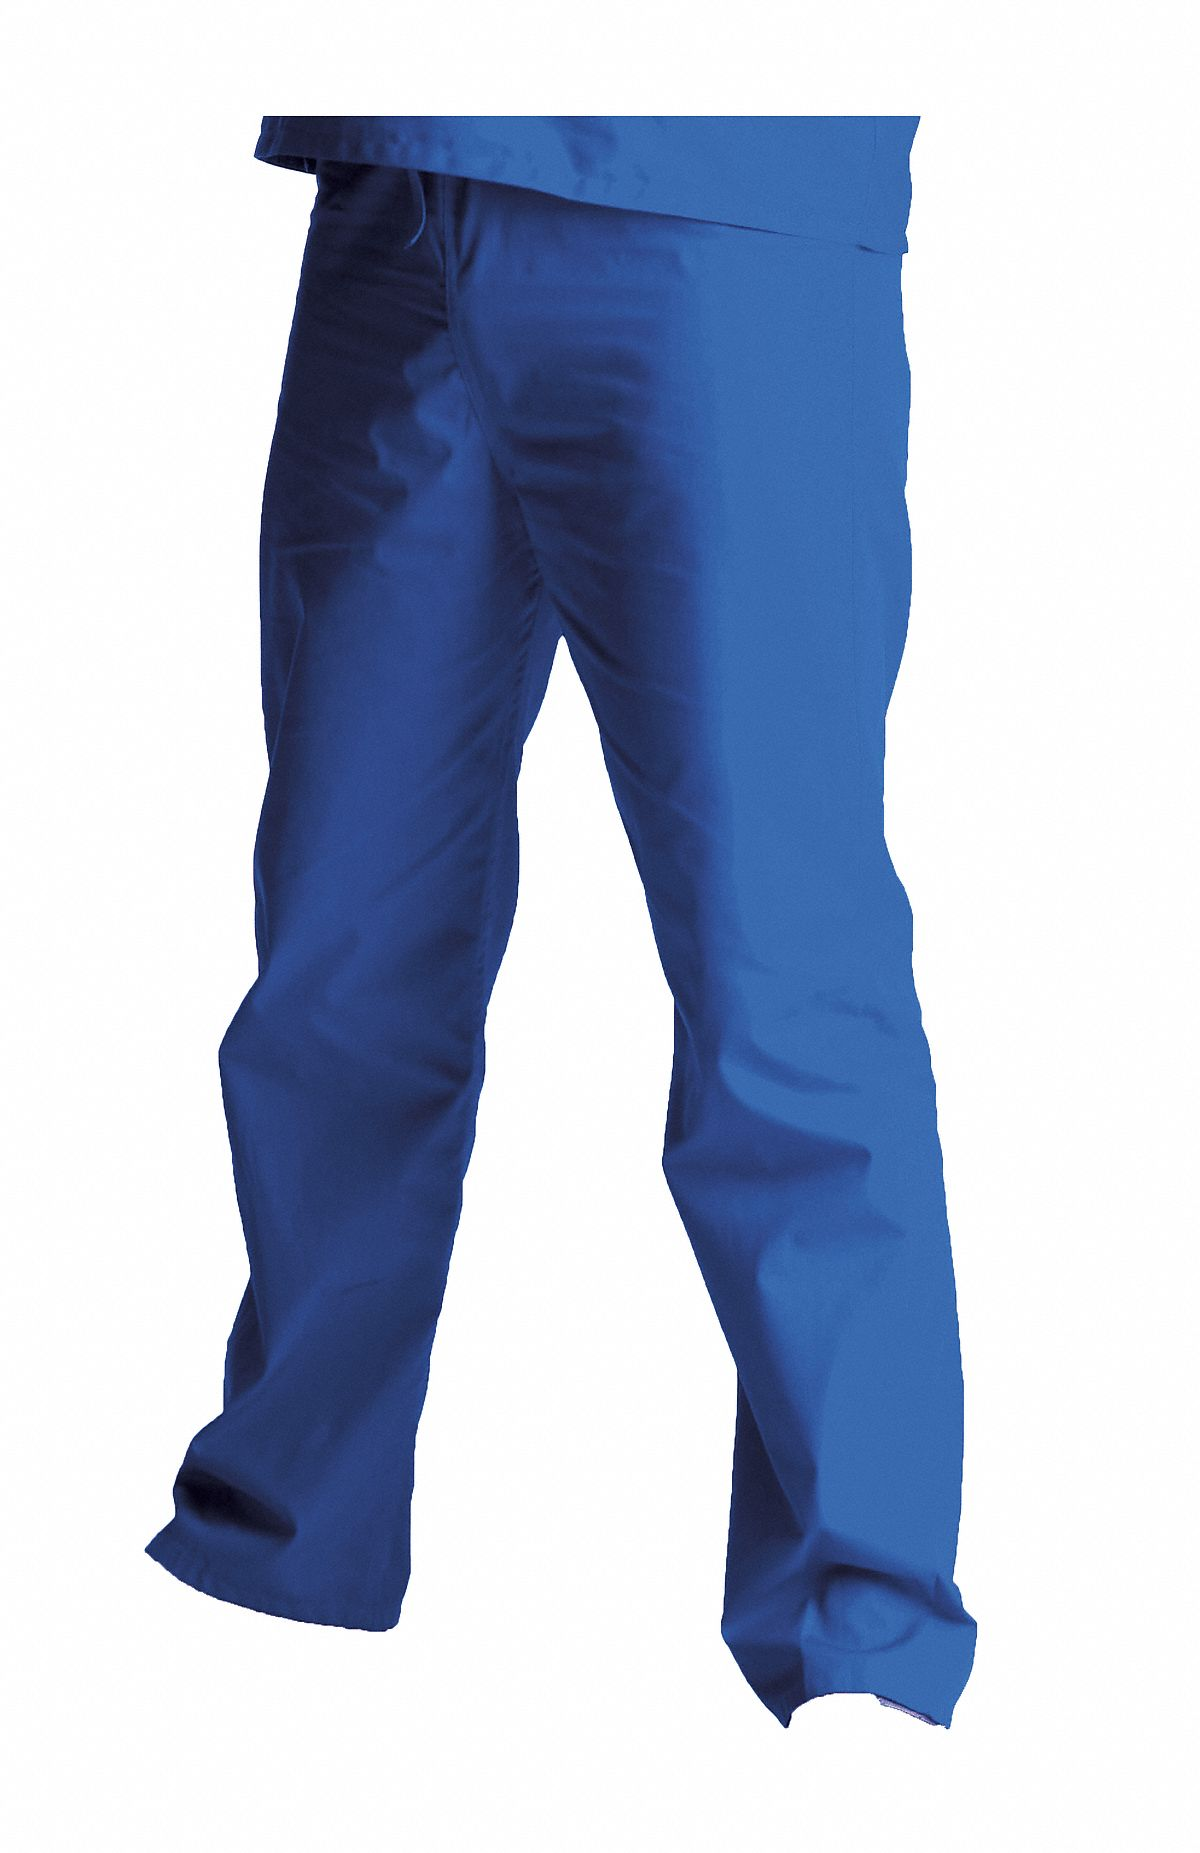 Royal Blue Scrub Pants,  L,  Polyester/Cotton,  Fits Waist Size 35 to 38 in,  Unisex